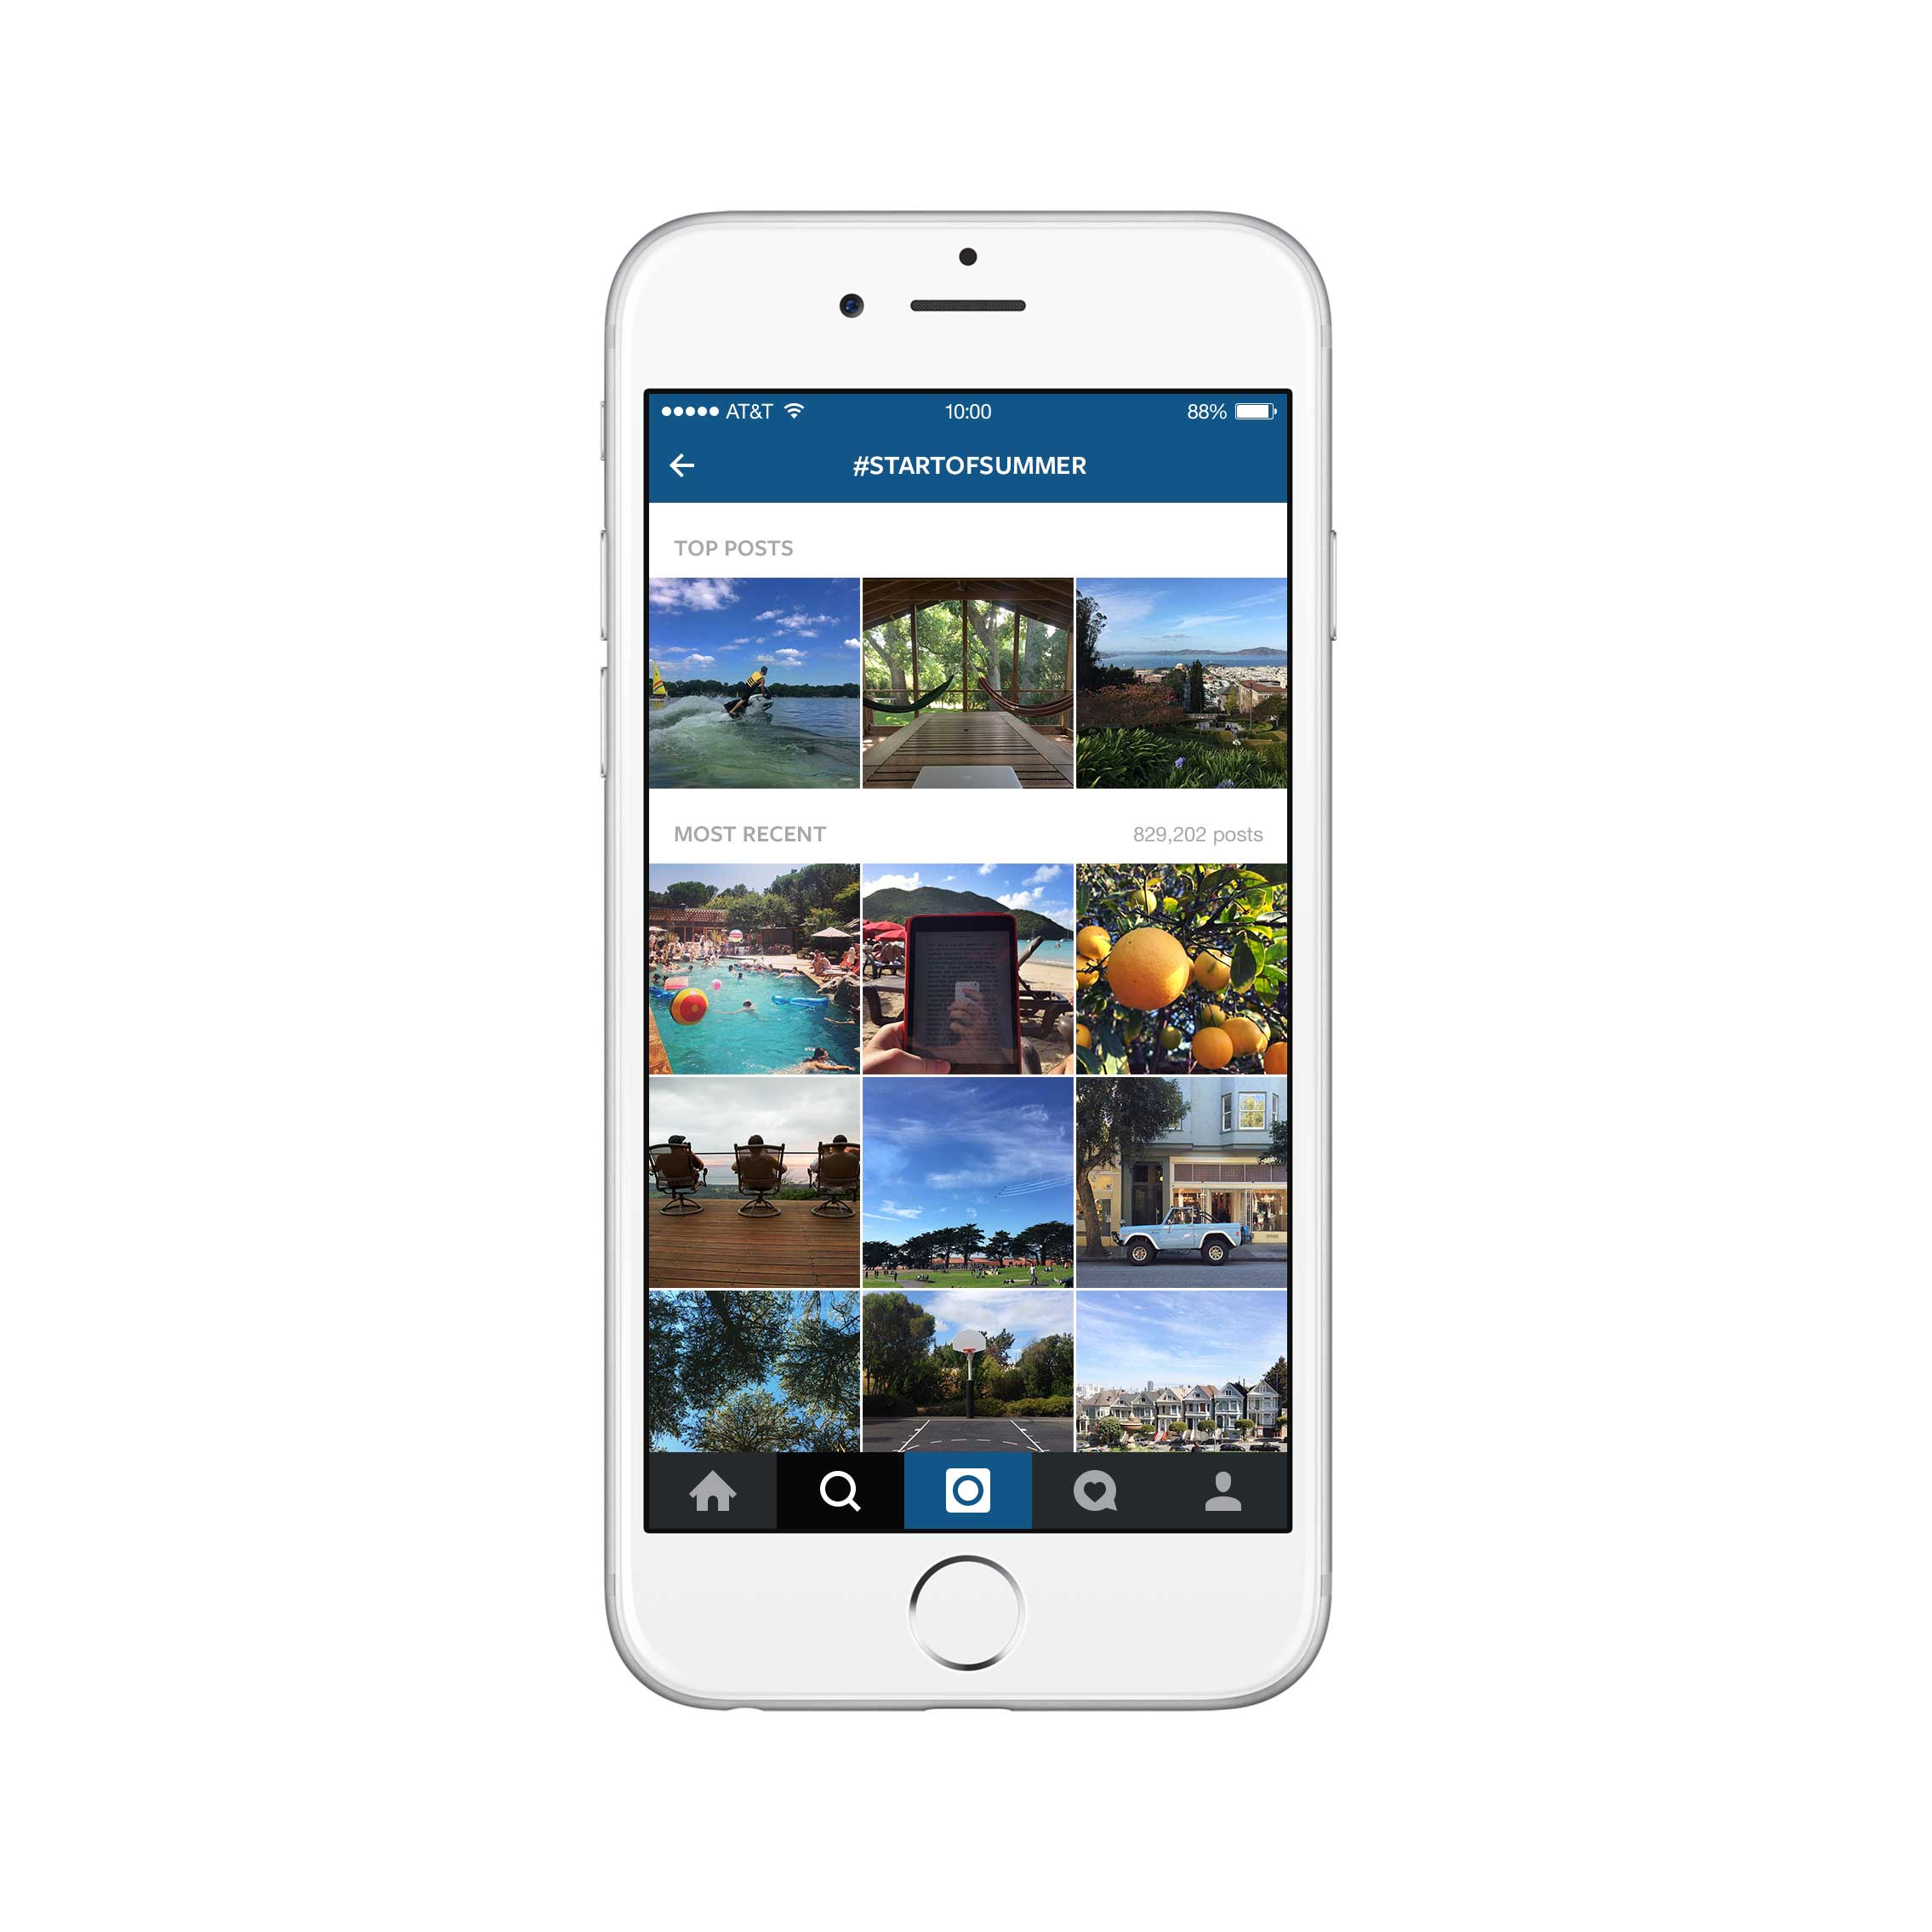 Users can see the most recent and trending photos posted for each hashtag